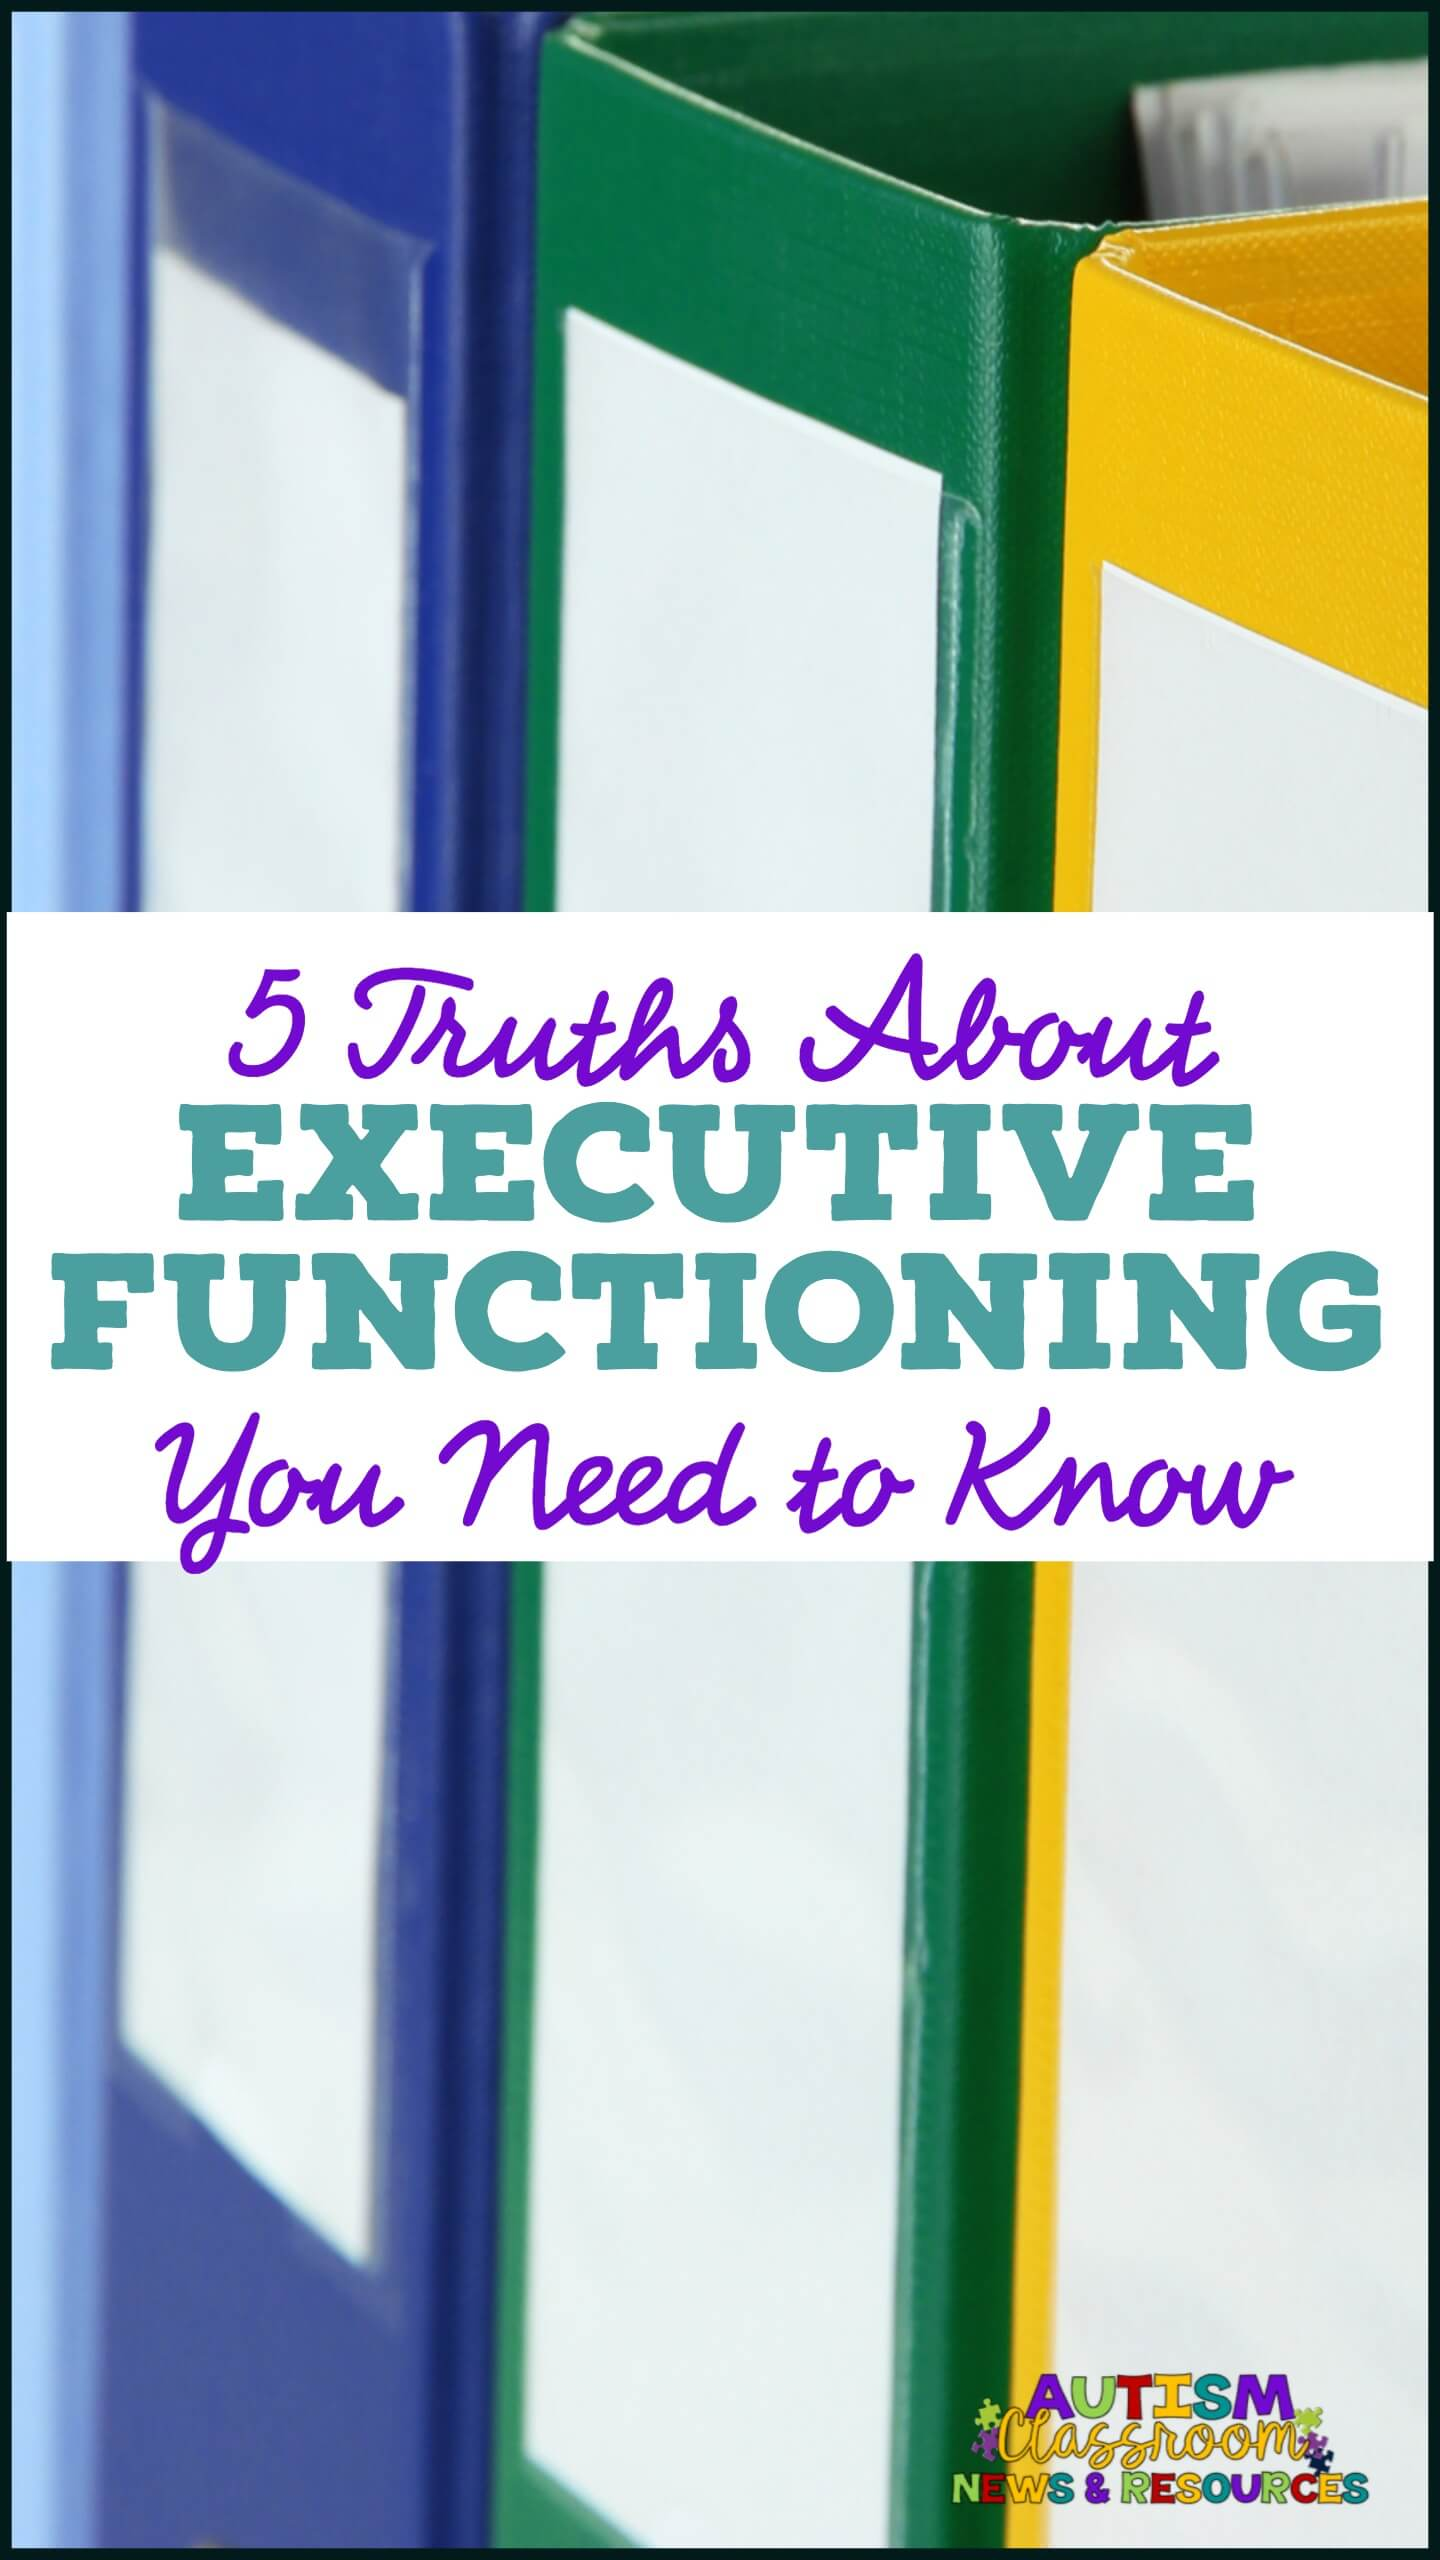 5 truths about executive functioning you need to know